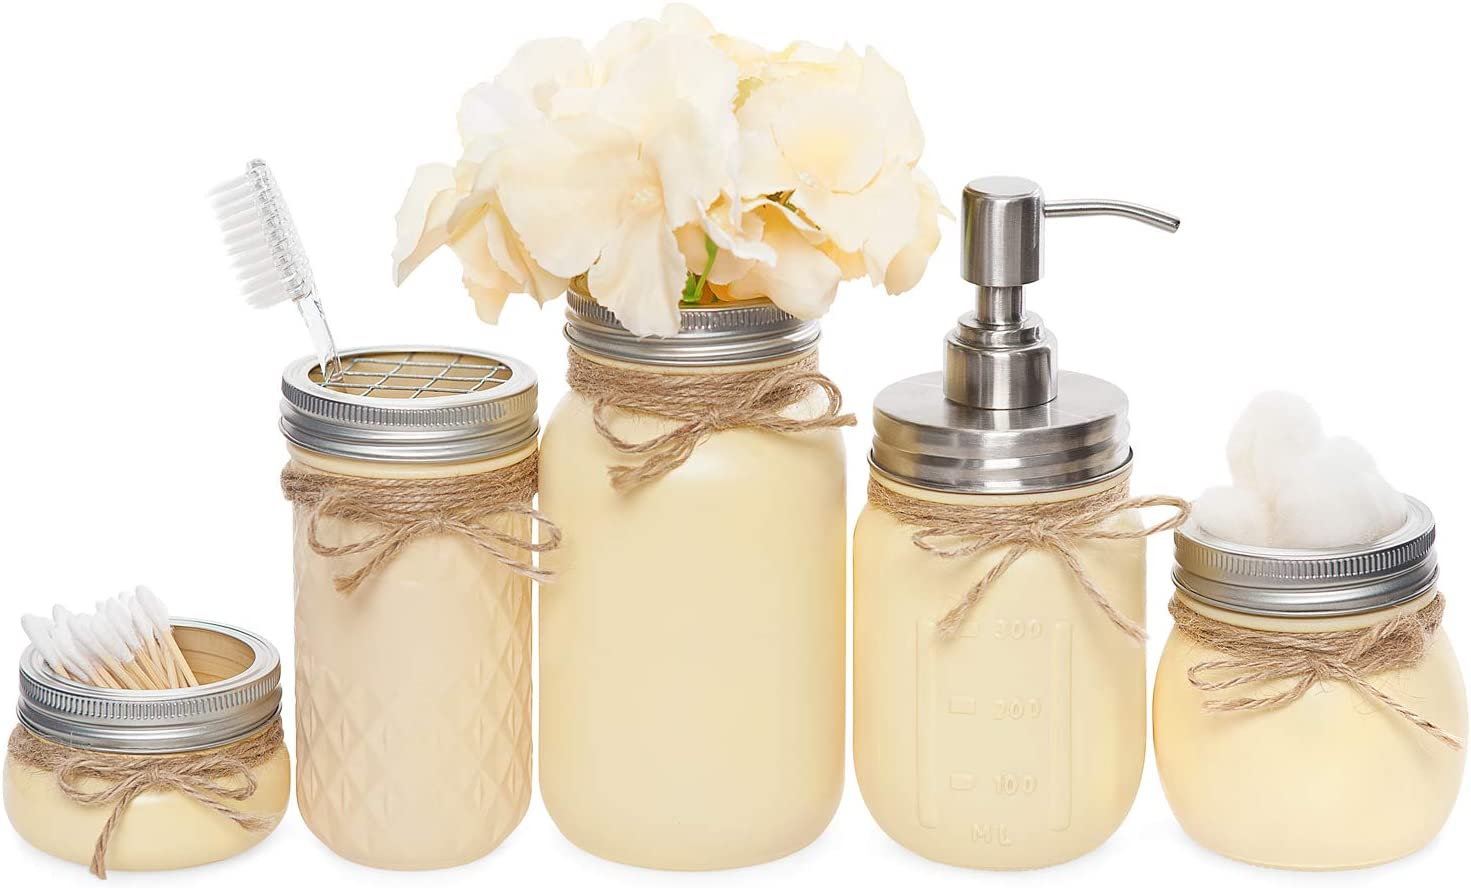 Mkono Mason Jar Bathroom Accessories Set 5 Piece Painted MasonJars Bathroom Organizer Include Liquid Soap Dispenser, Cotton Swab, Makeup Sponge,Tissue,Toothbrush Holder,Rustic Country Countertop Decor